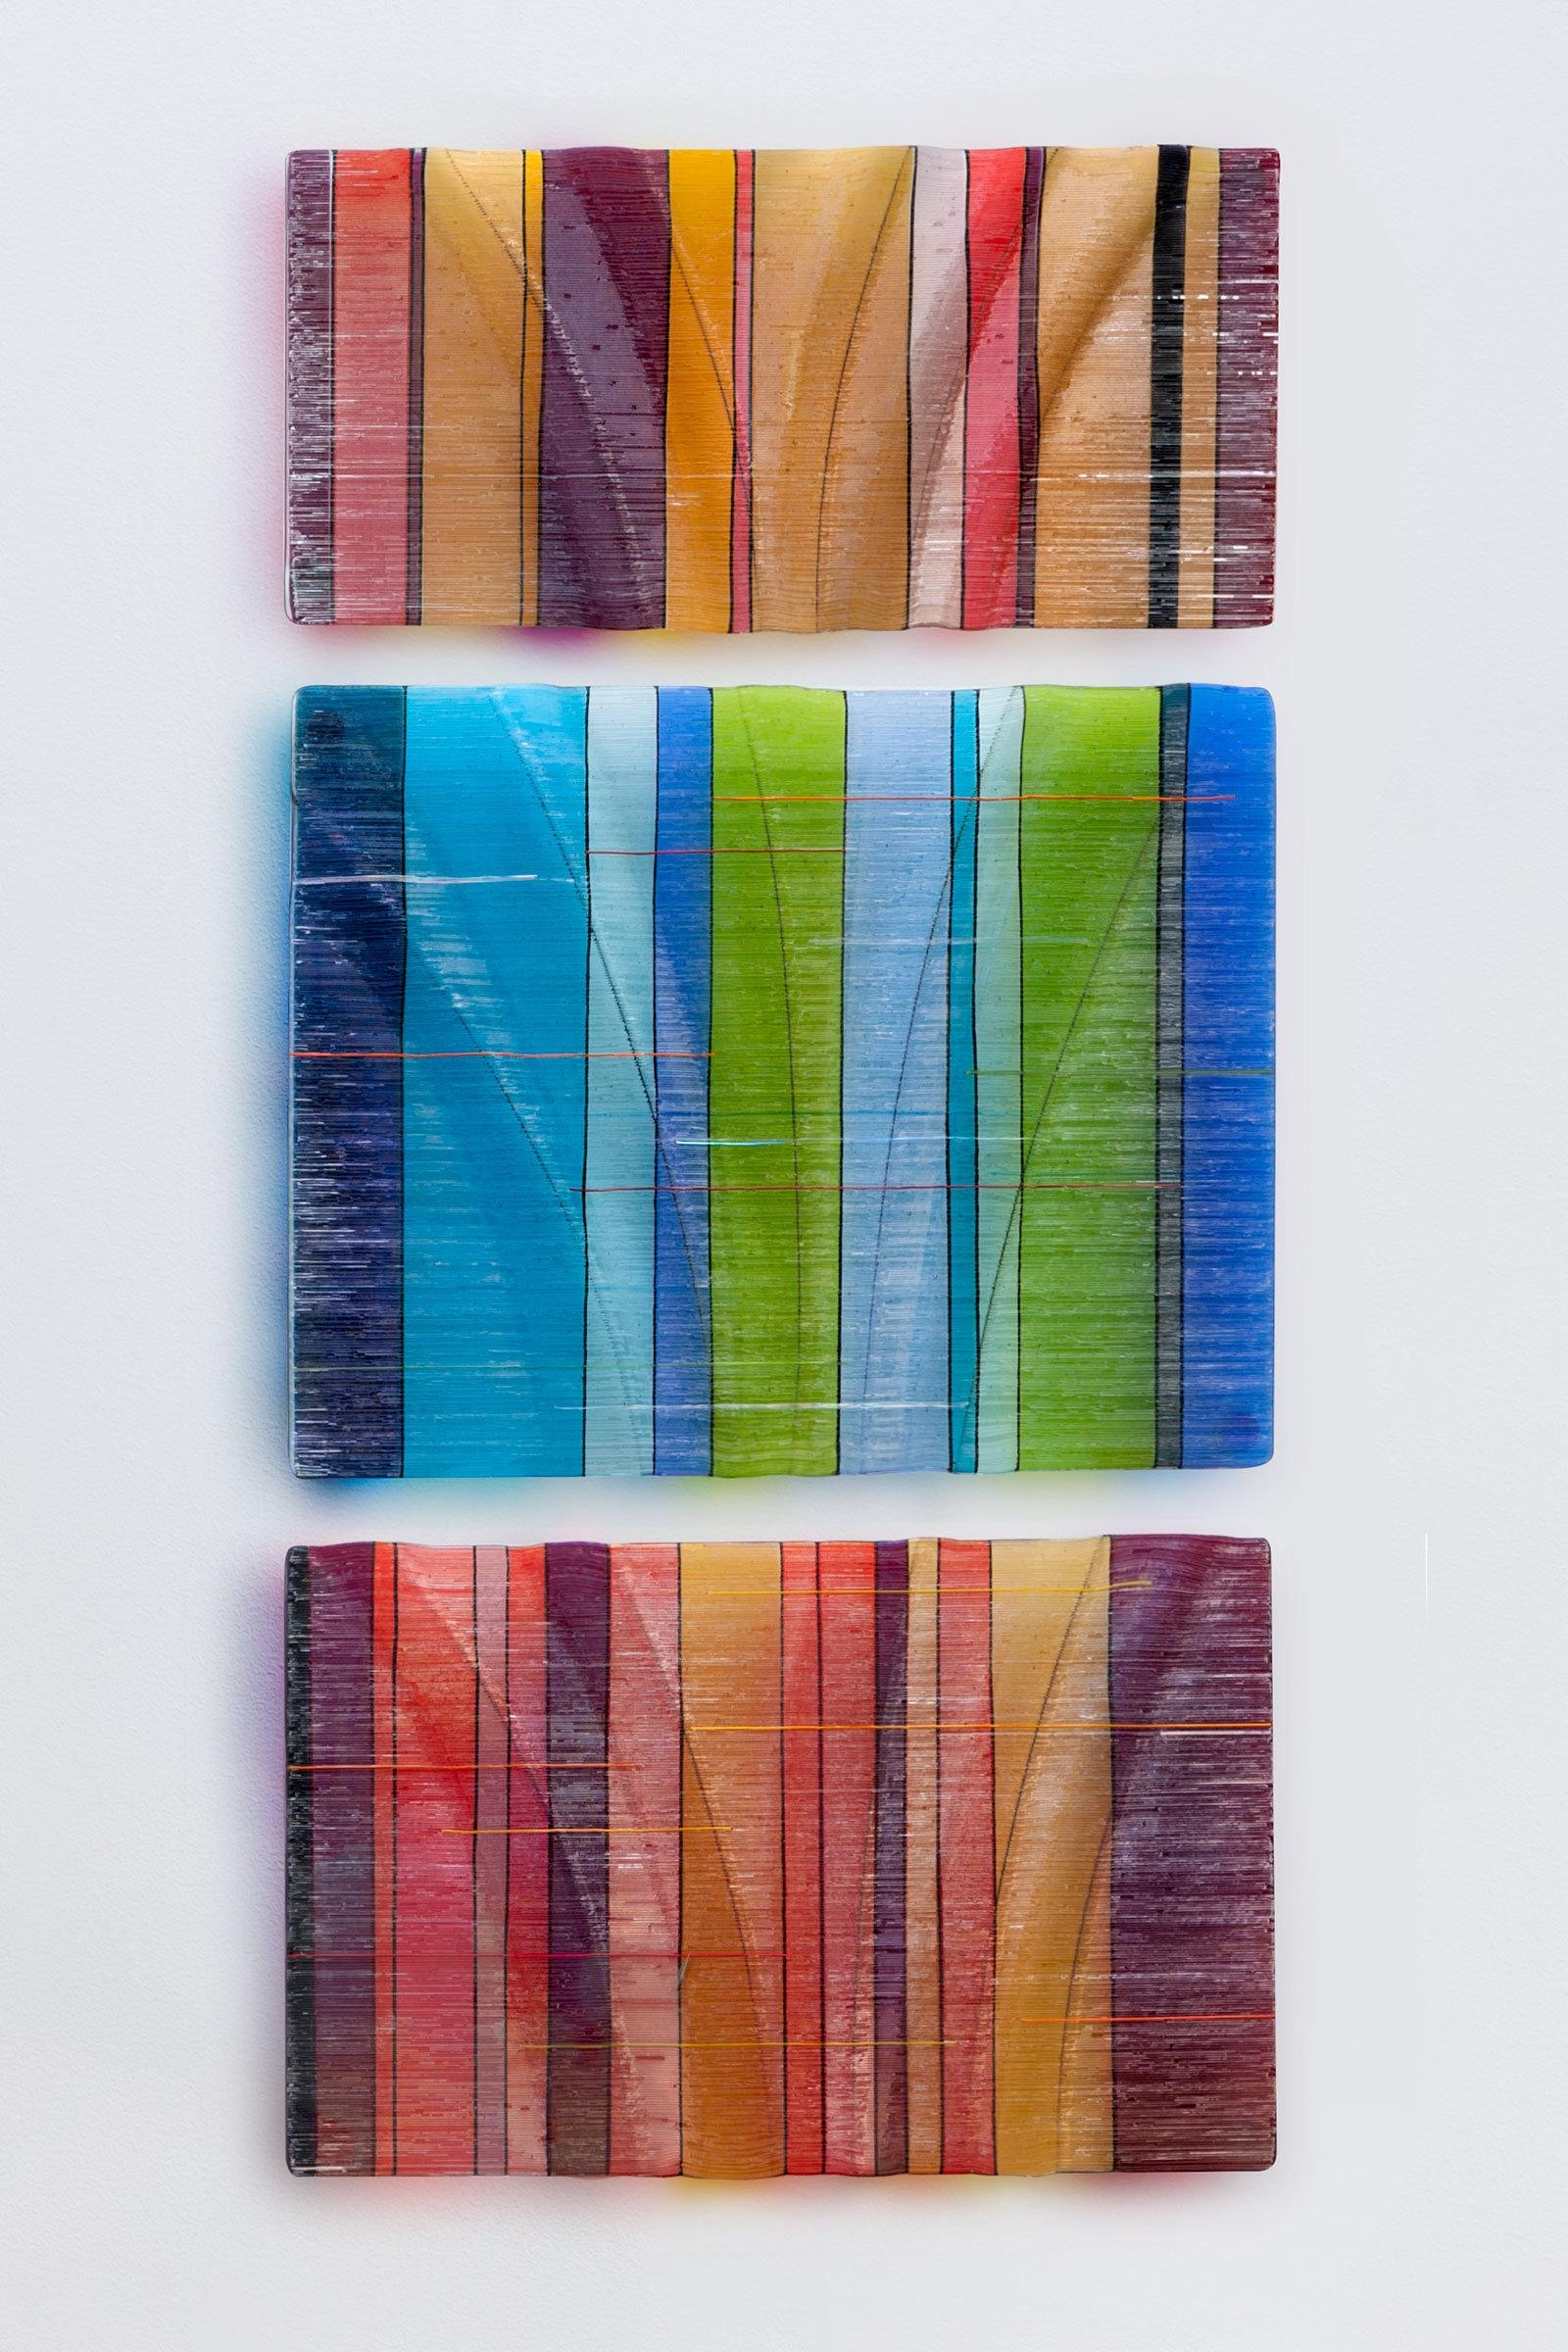 Artisanal Chocolates | Artful Home Inside Fused Glass Wall Art Hanging (View 13 of 20)